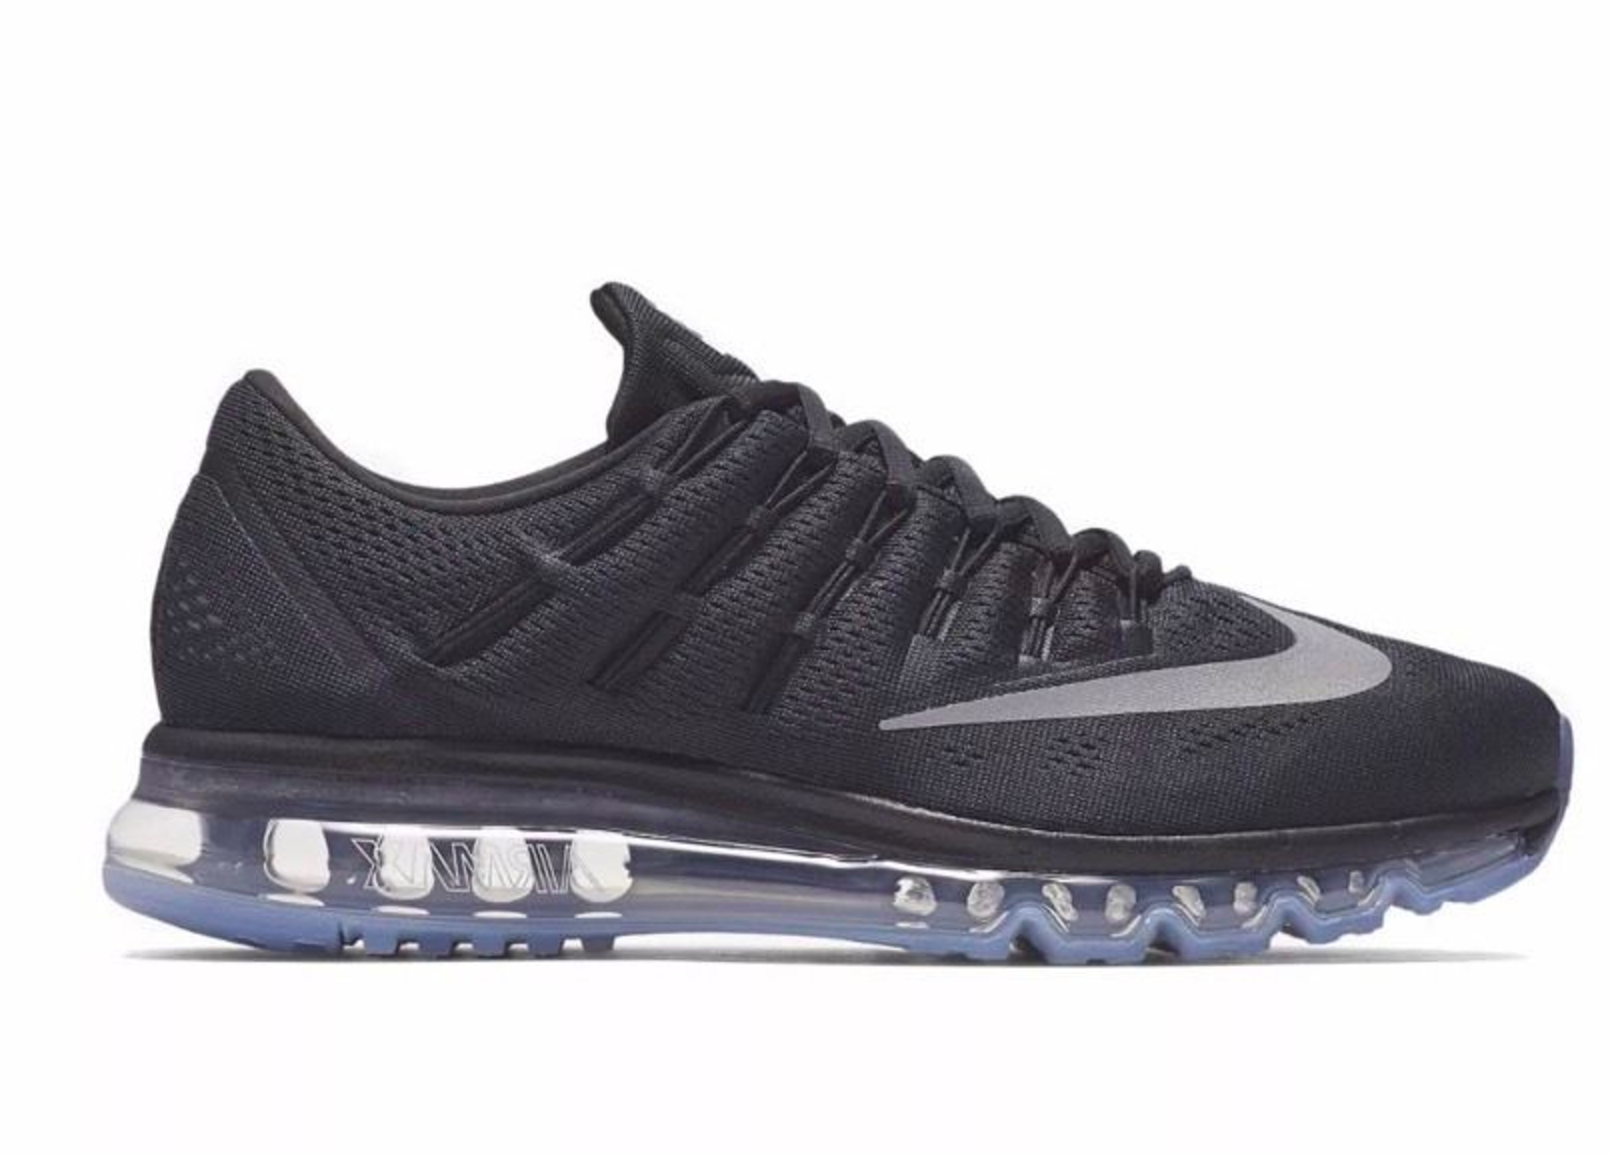 online store 9f72d f1f23 Nike Air Max 2016 Black White, Sneakers, Nike - SNEAKER OVEN